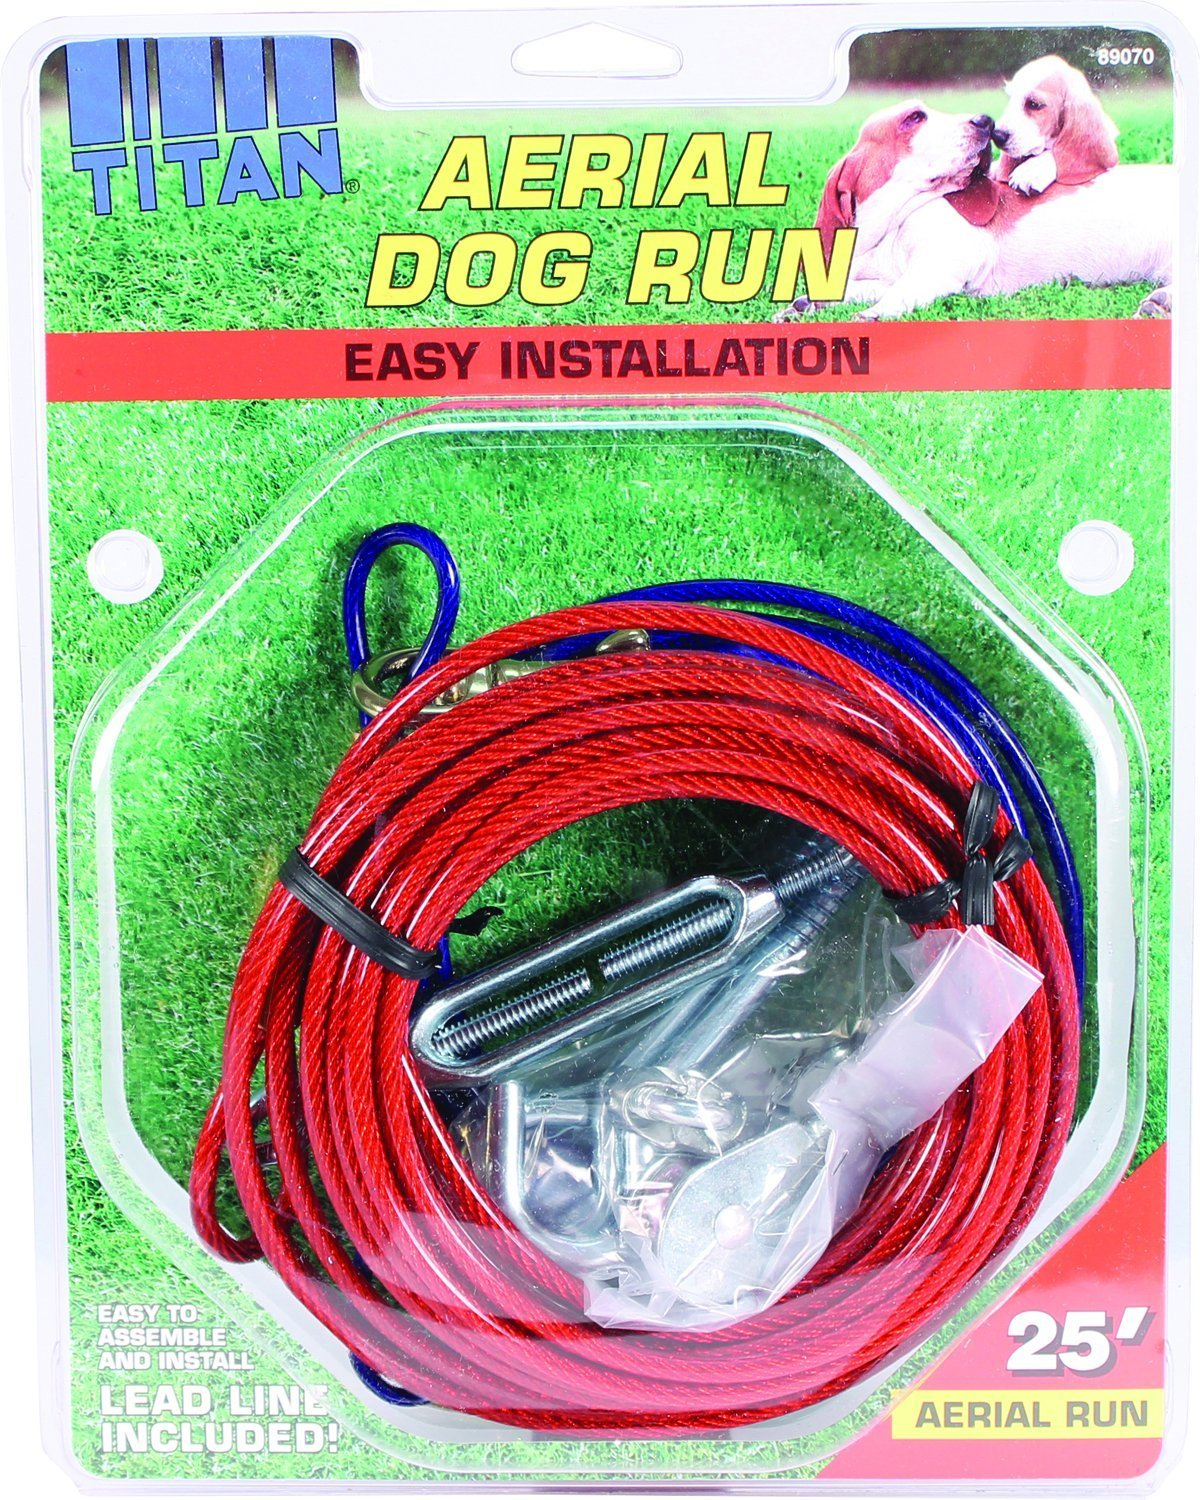 Titan Aerial Dog Run by Coastal Pet